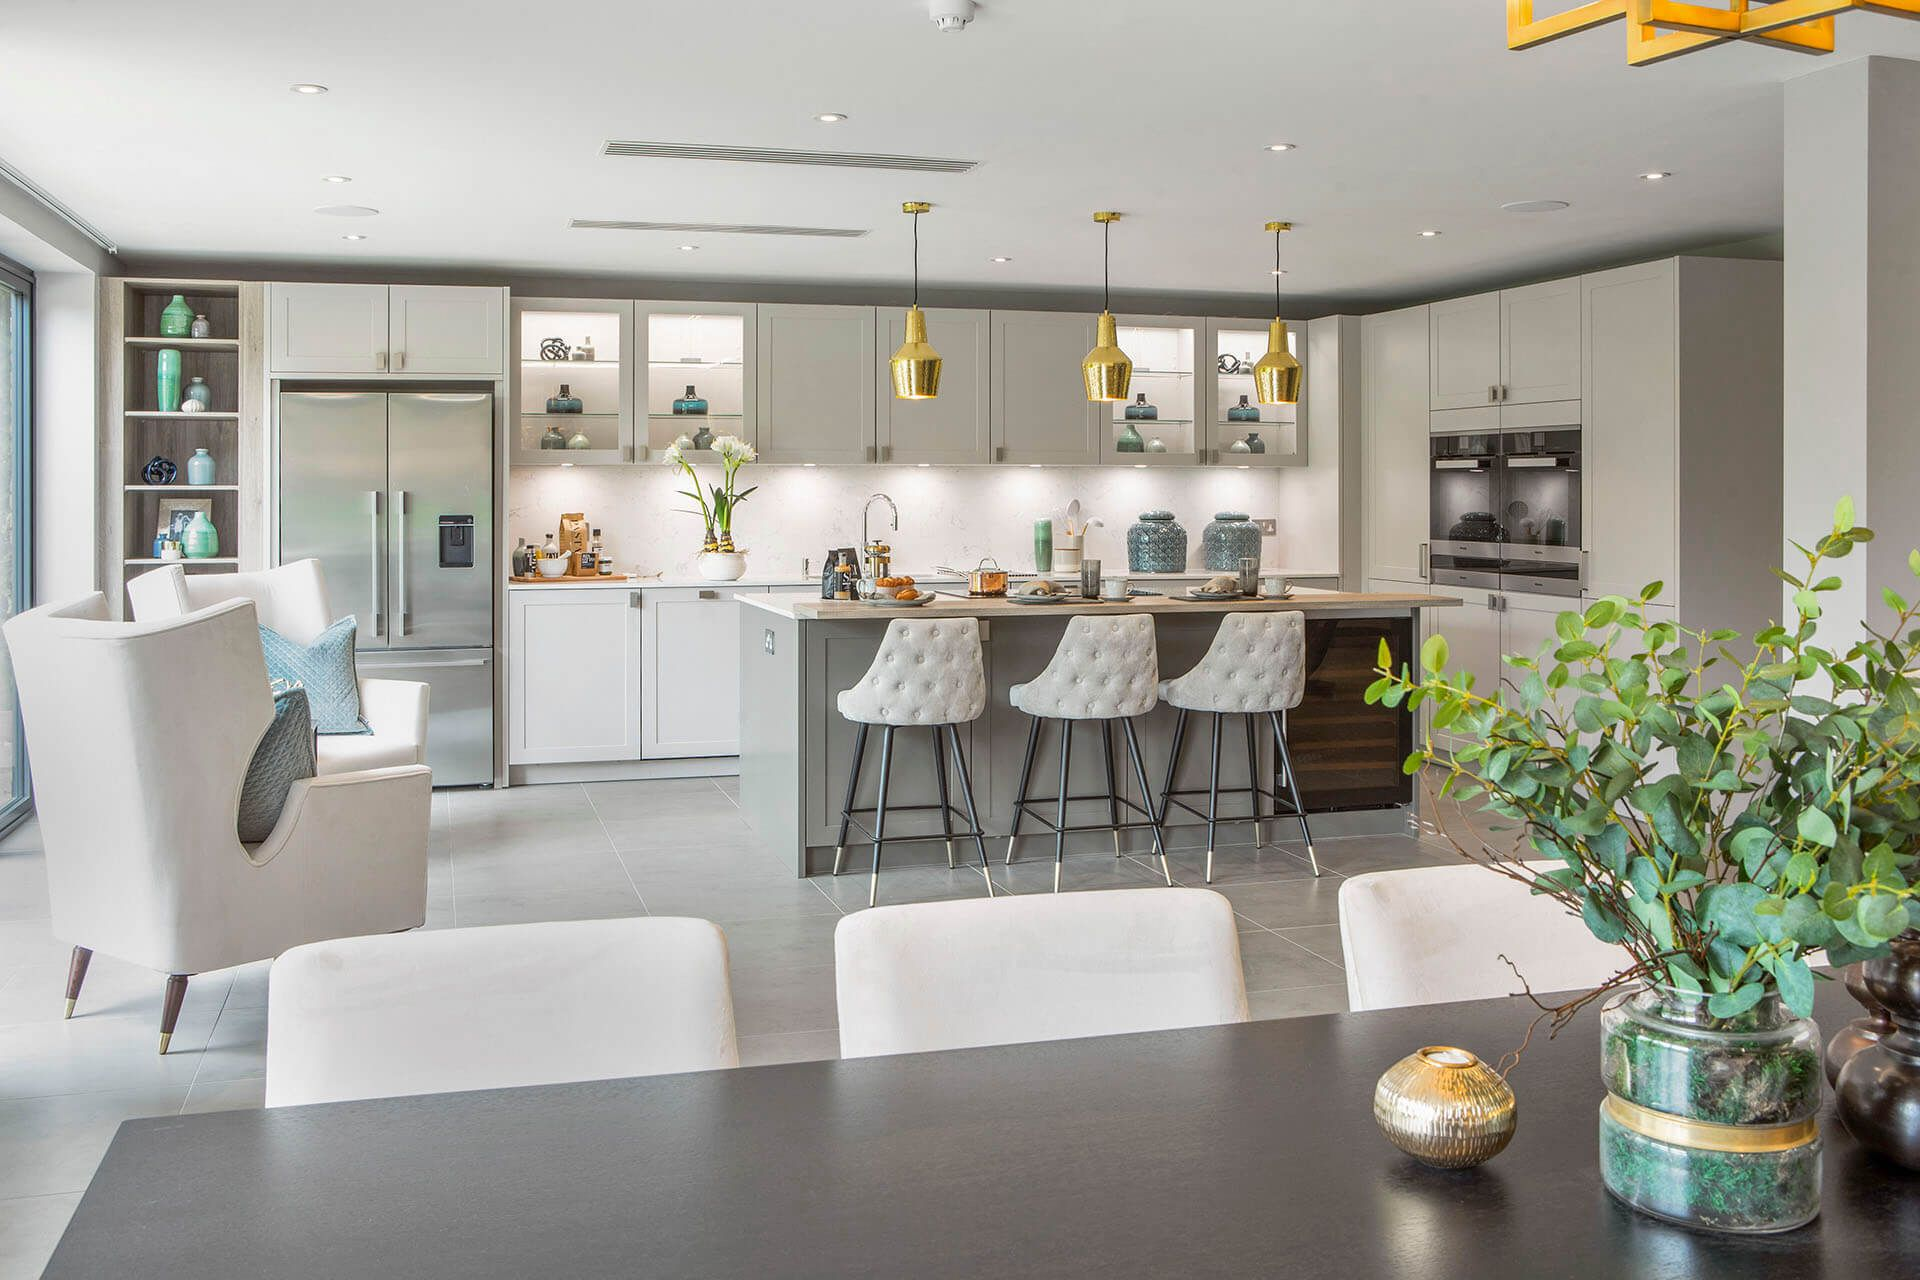 The Impressively Appointed Kitchendining Room Provides Air Conditioned Comfort And Integrated